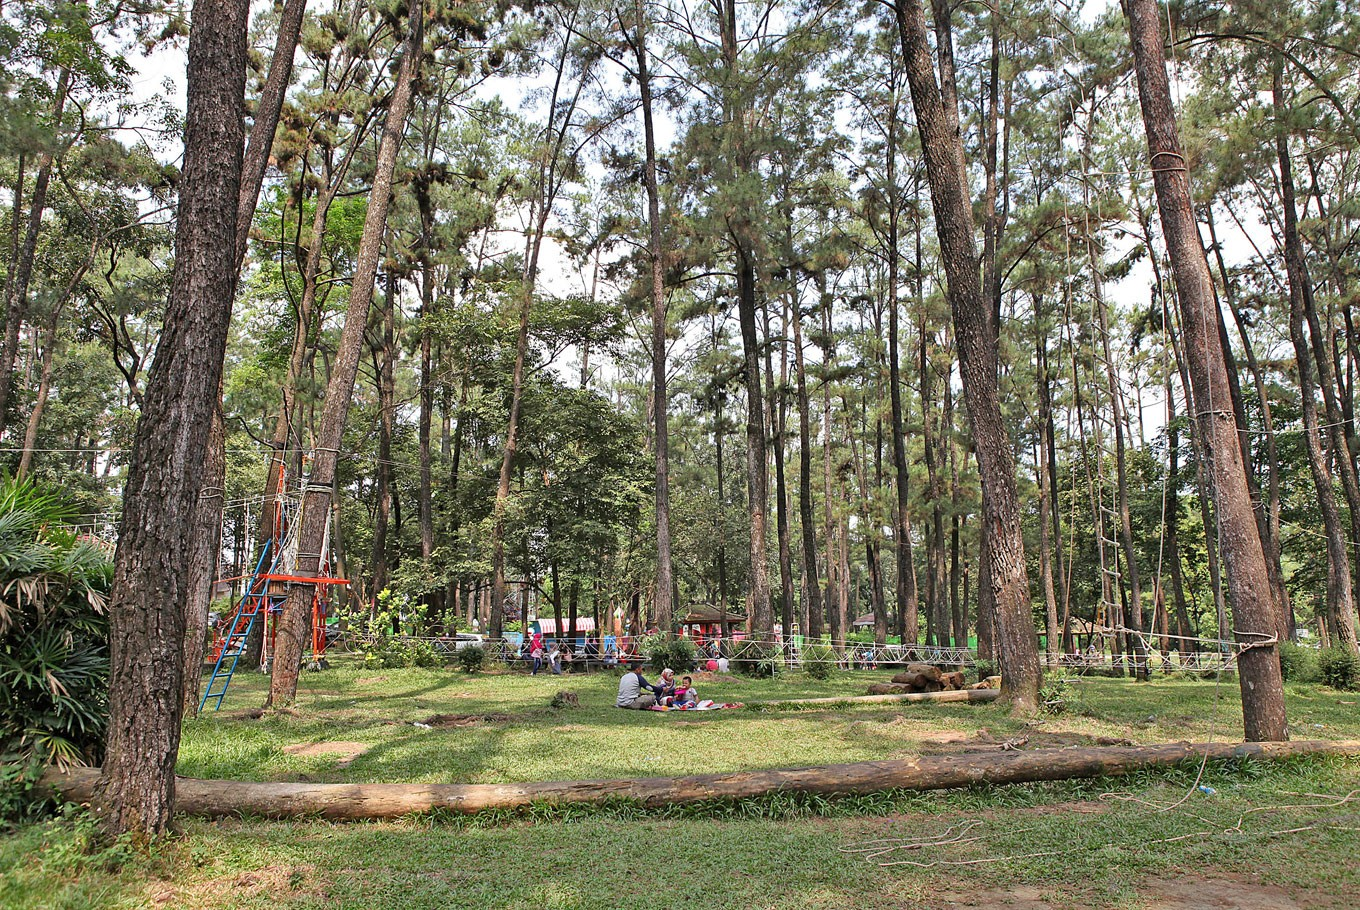 Jakarta commits to protecting green spaces at Global Climate Action Summit